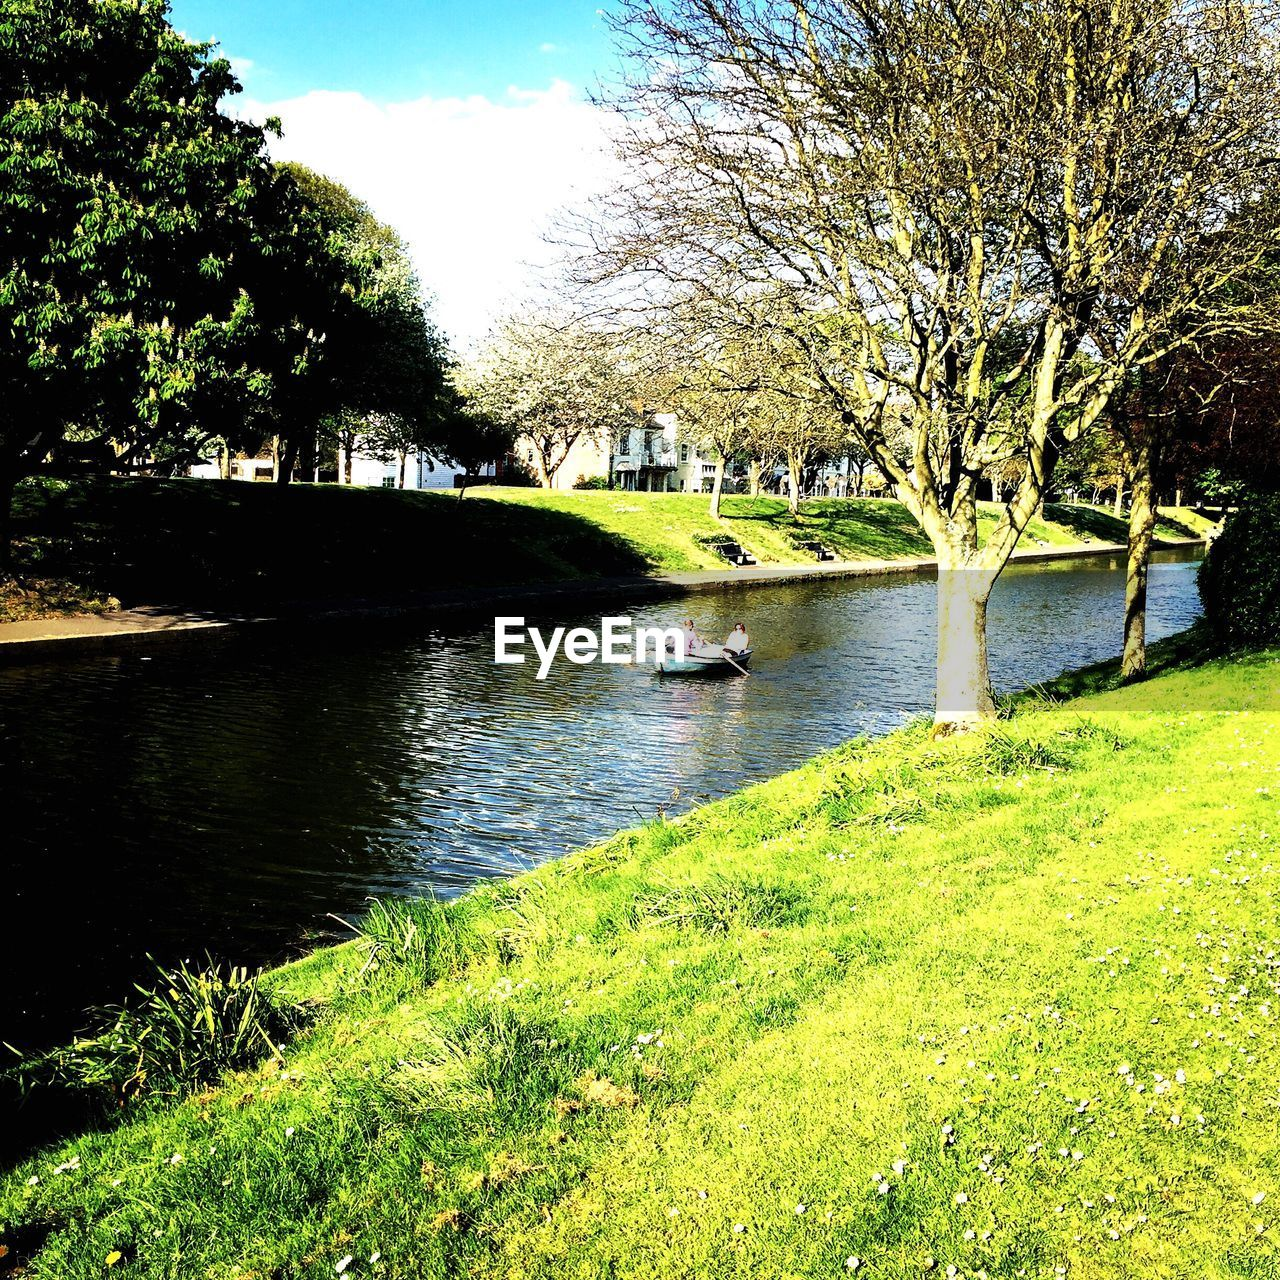 tree, grass, water, river, nature, growth, green color, outdoors, sunlight, architecture, day, no people, beauty in nature, sky